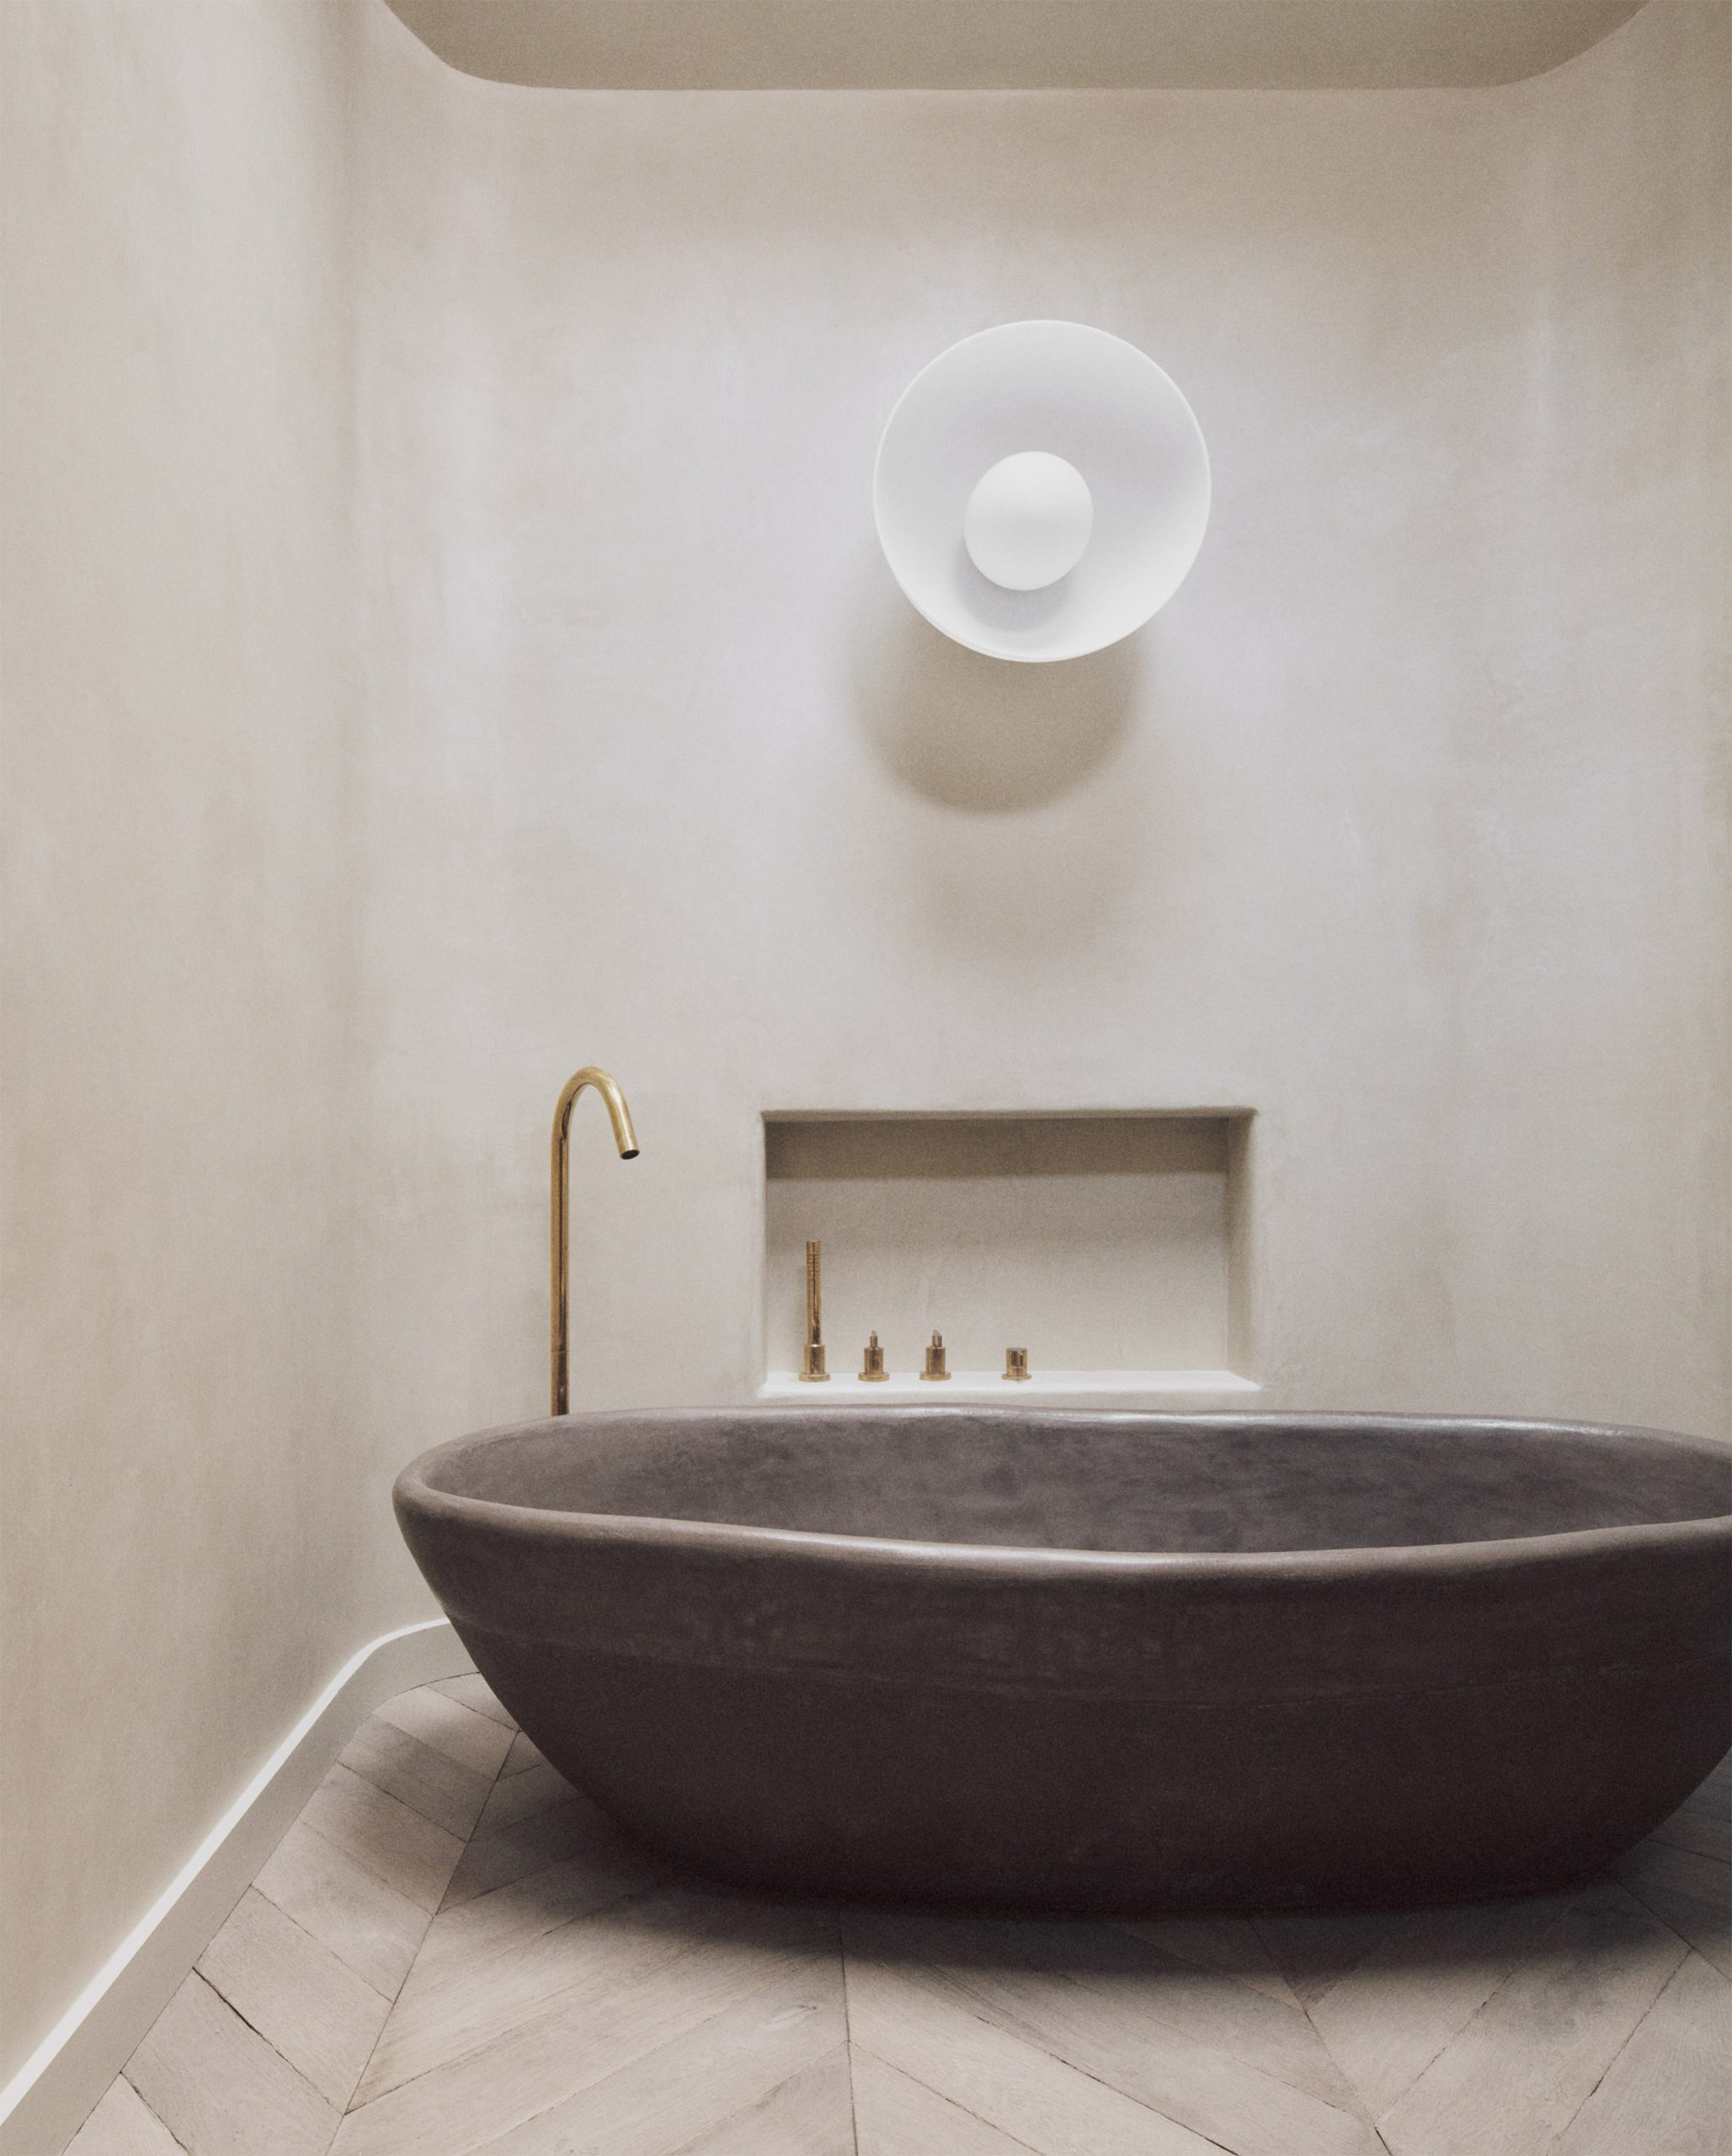 Bath made from sands, unfired clays, pigments and minerals